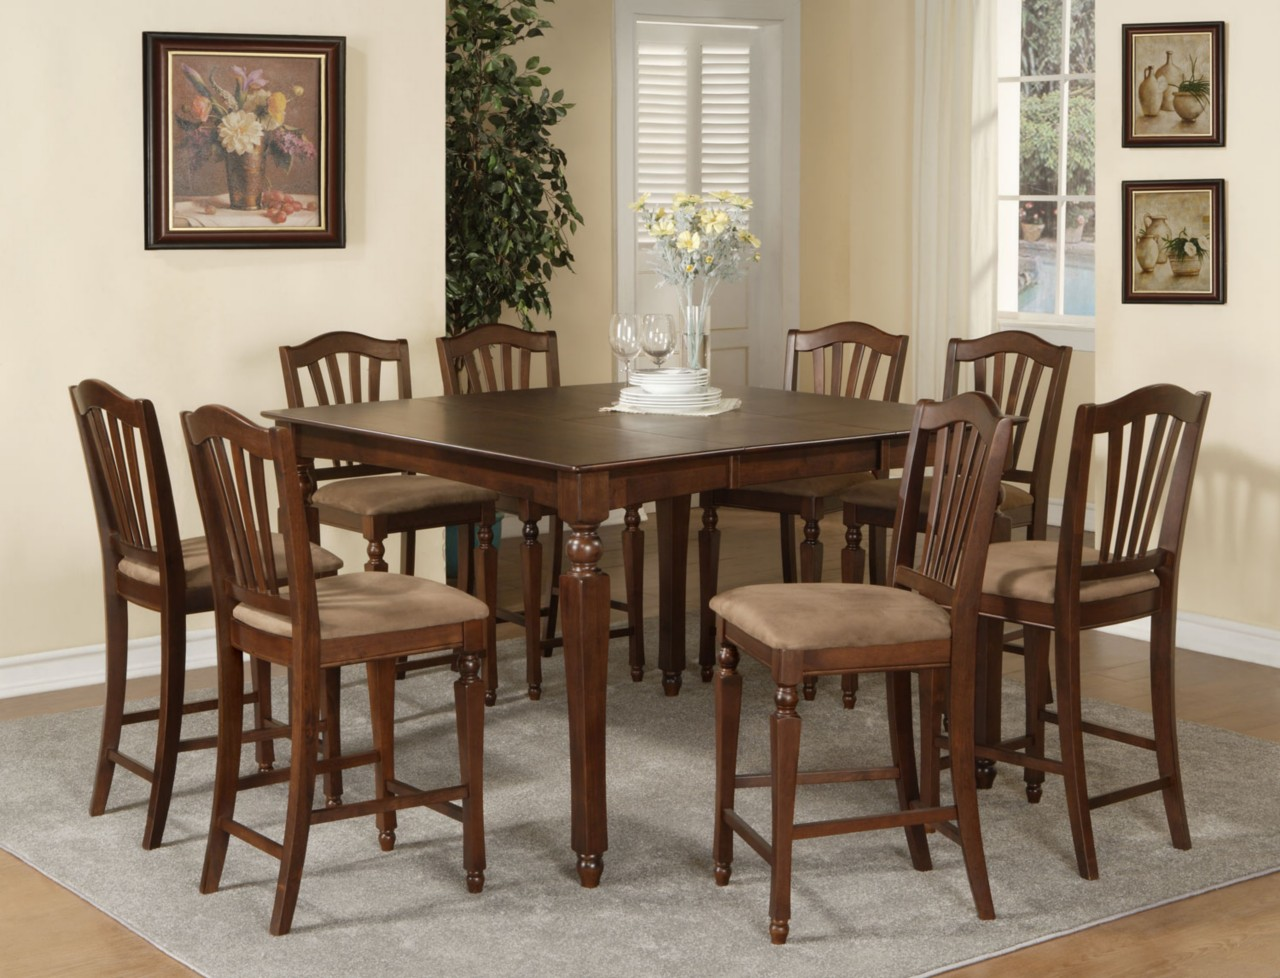 square dining room tables for 8 | 9PC CHELSEA SQUARE COUNTER HEIGHT DINING ROOM TABLE SET 8 ...